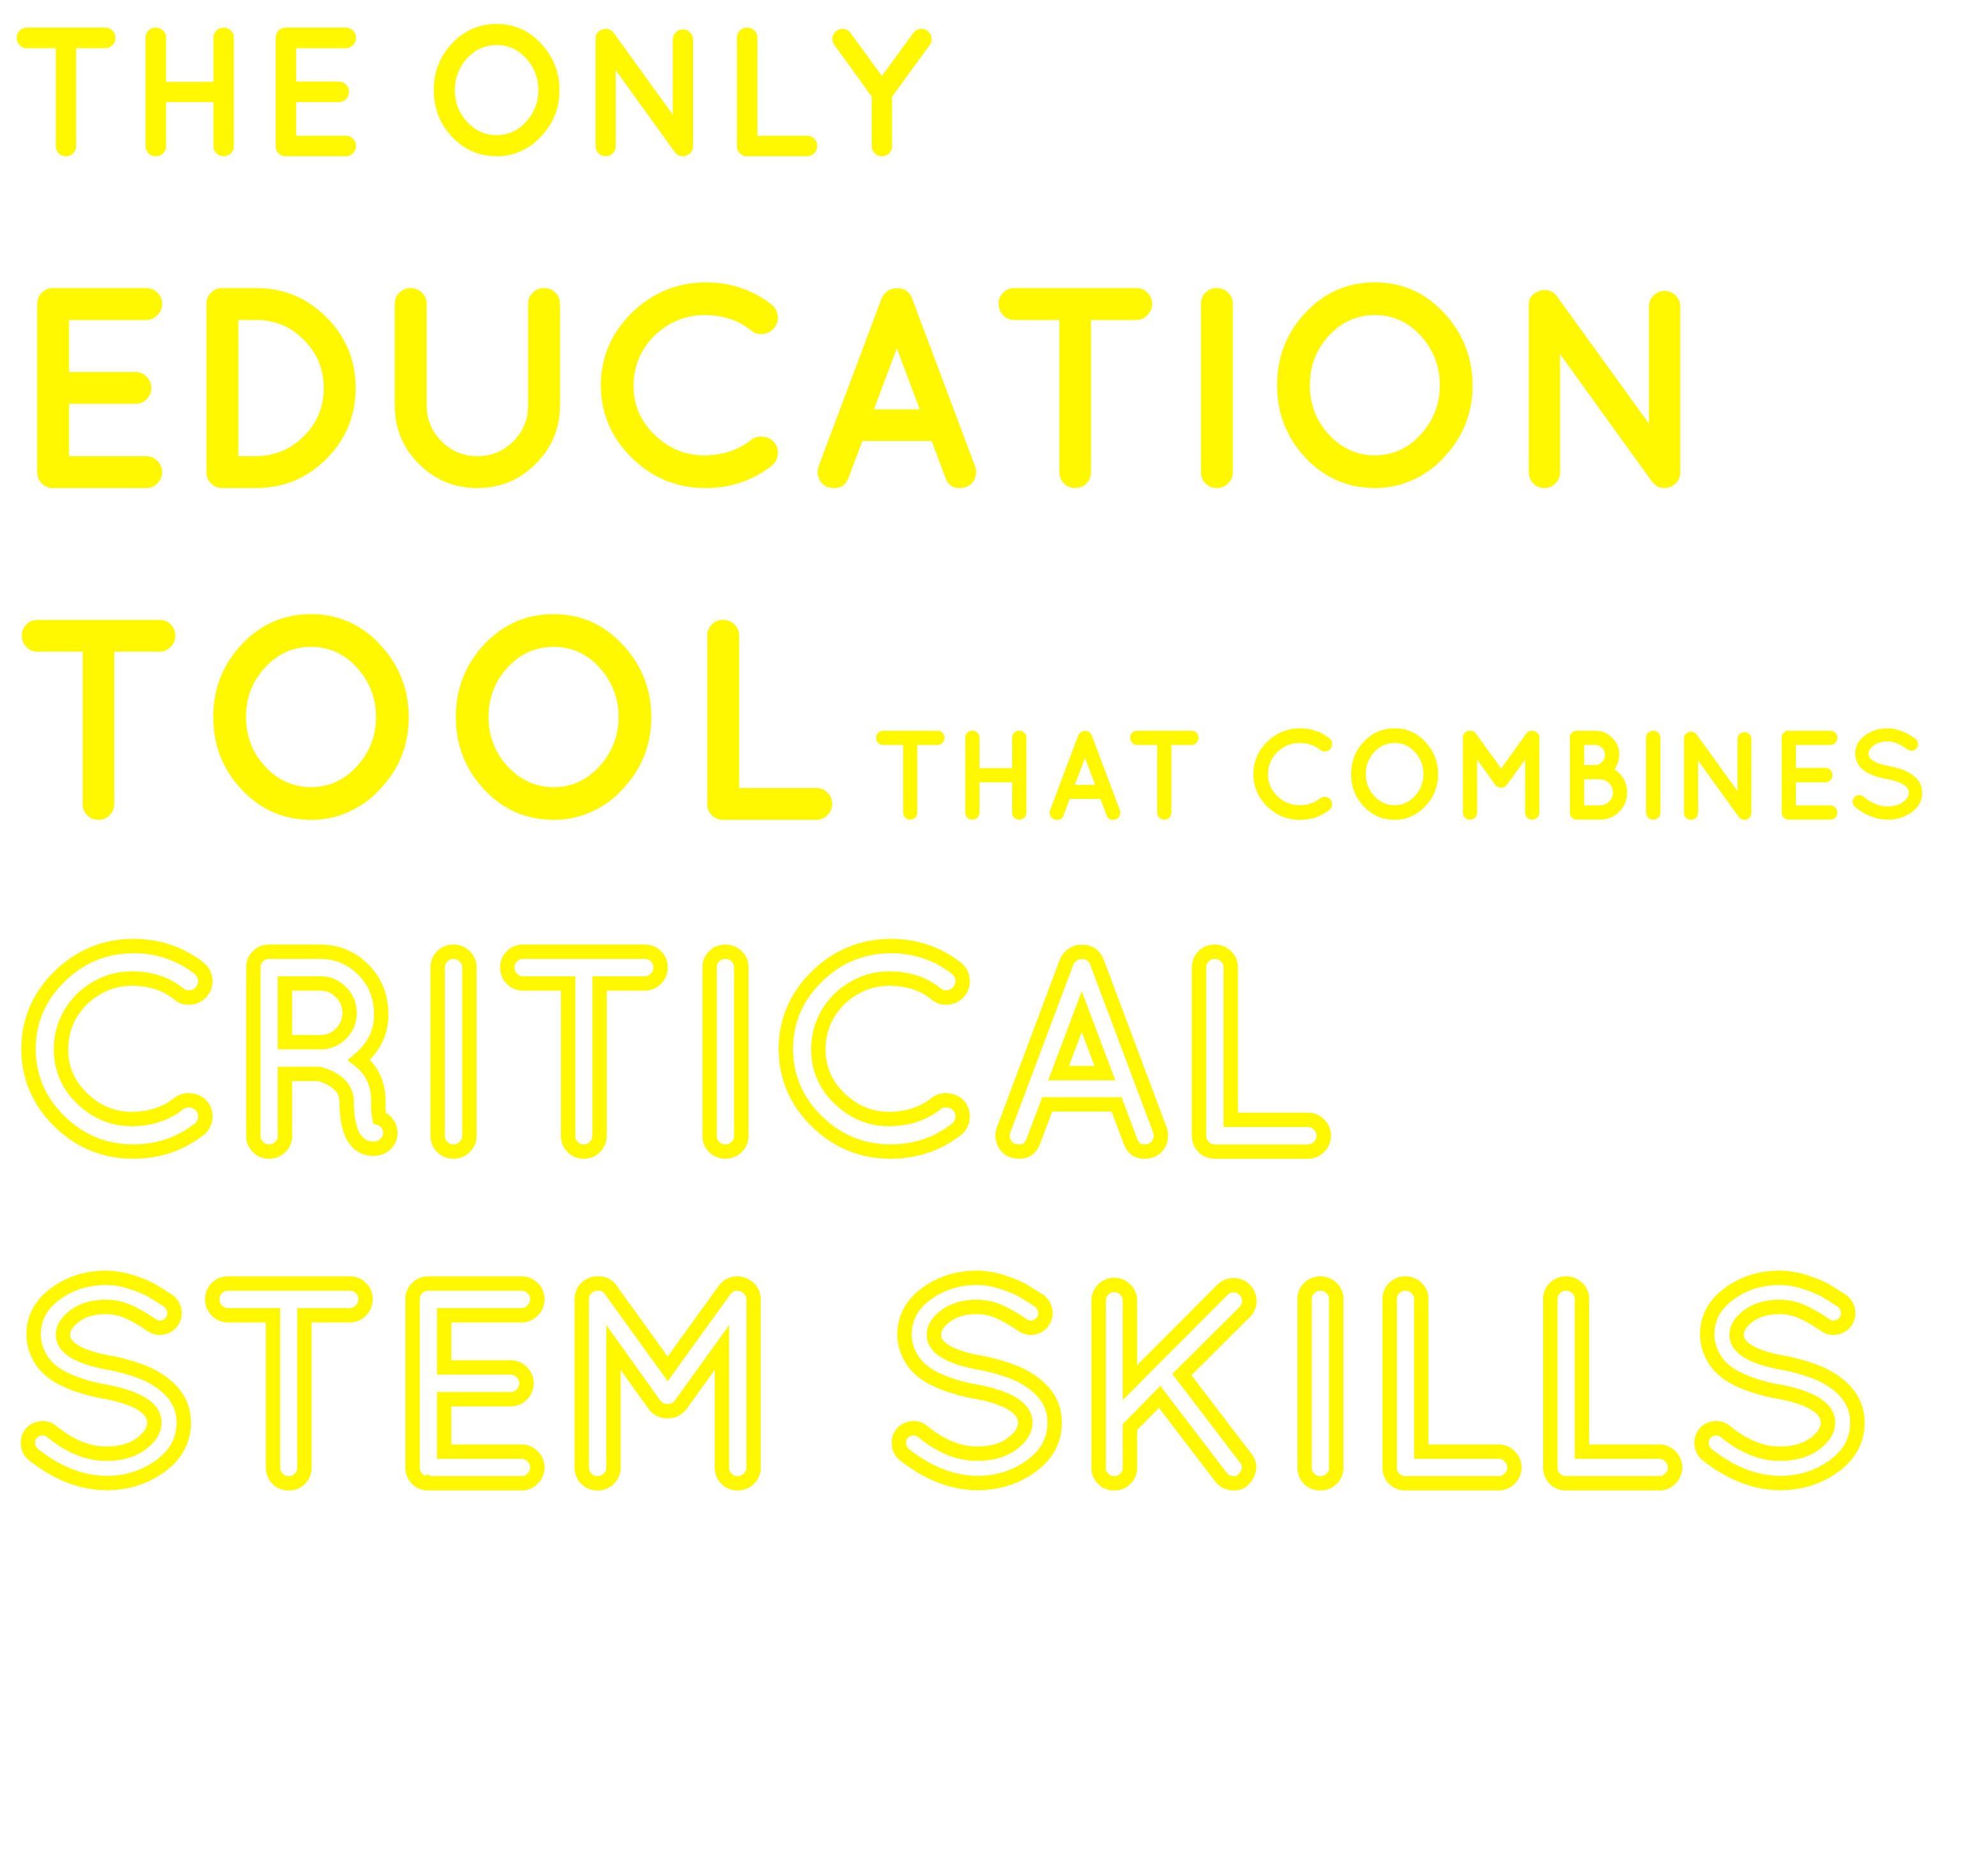 The Only Education Tool That Combines Critical STEM Skills with